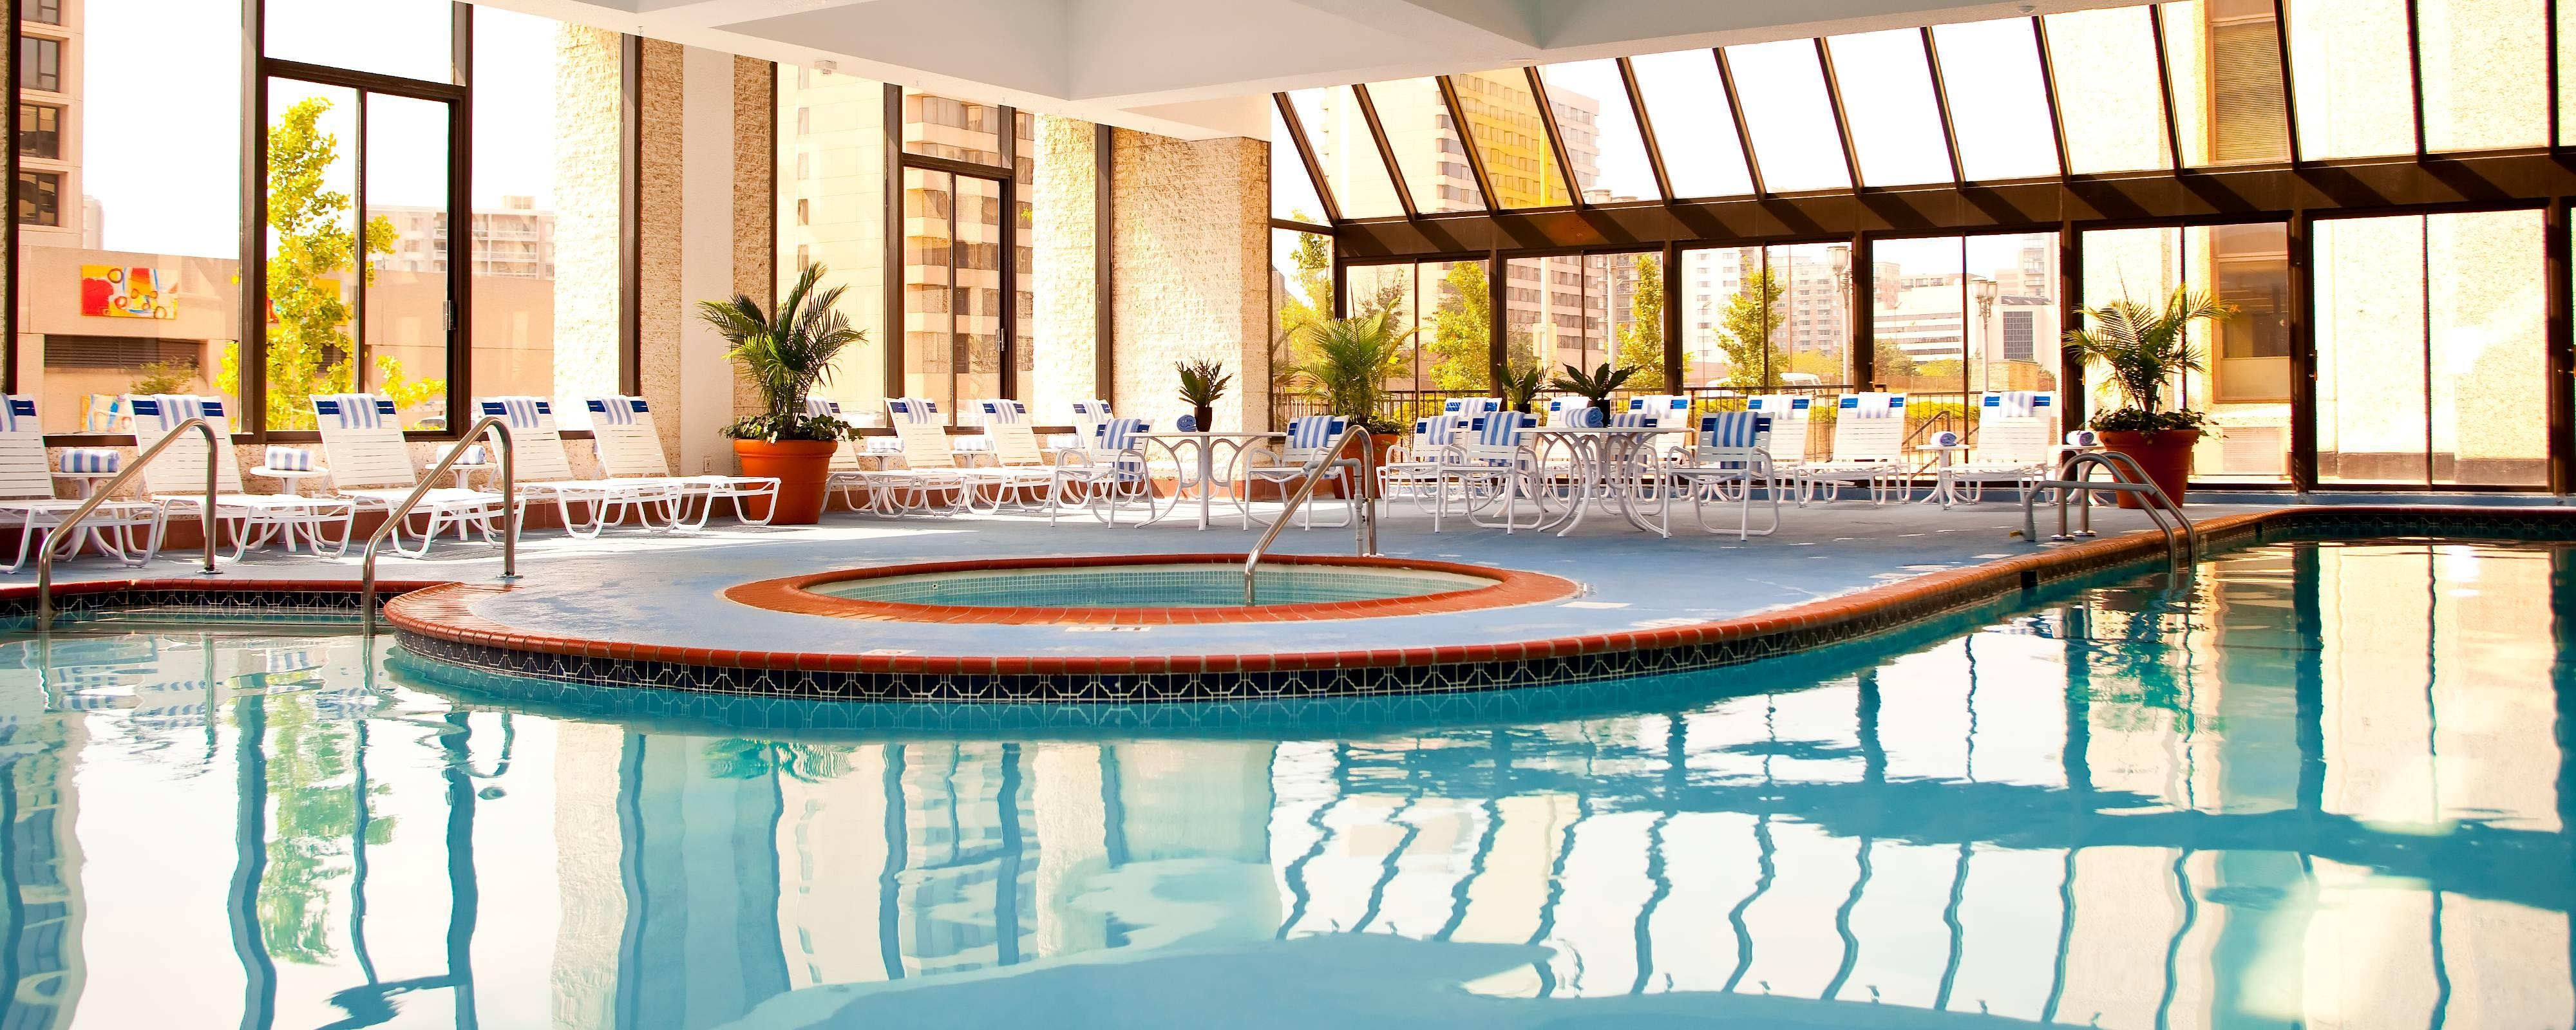 Pool des Crystal City Marriott Hotels